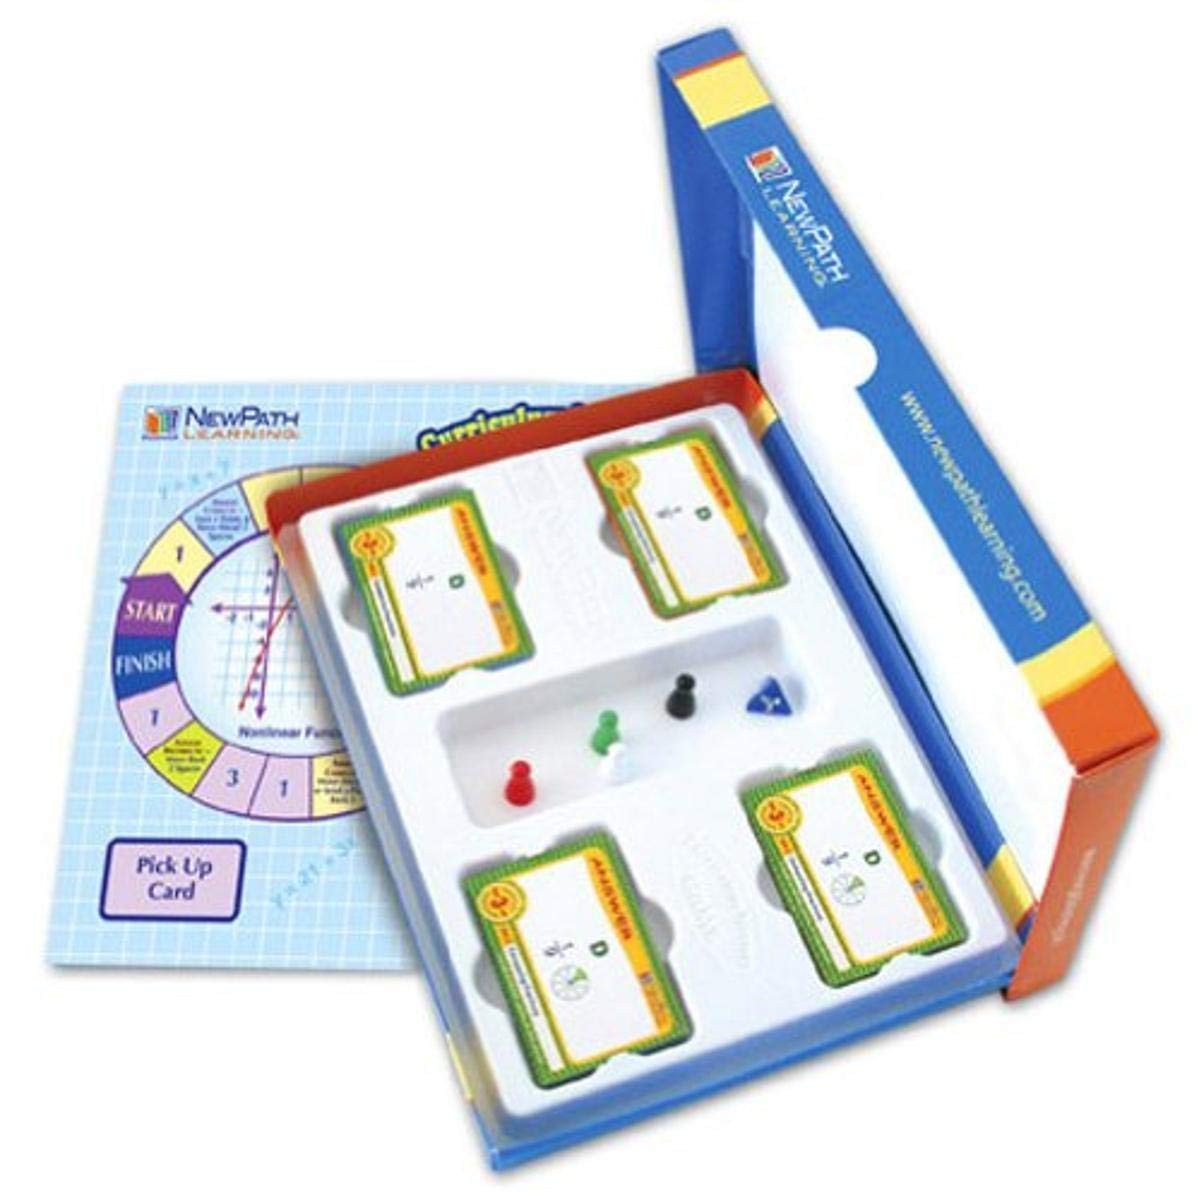 NewPath Learning - 23-6402 Algebra Skills Curriculum Mastery Game, Grade 6-10, Study-Group Pack